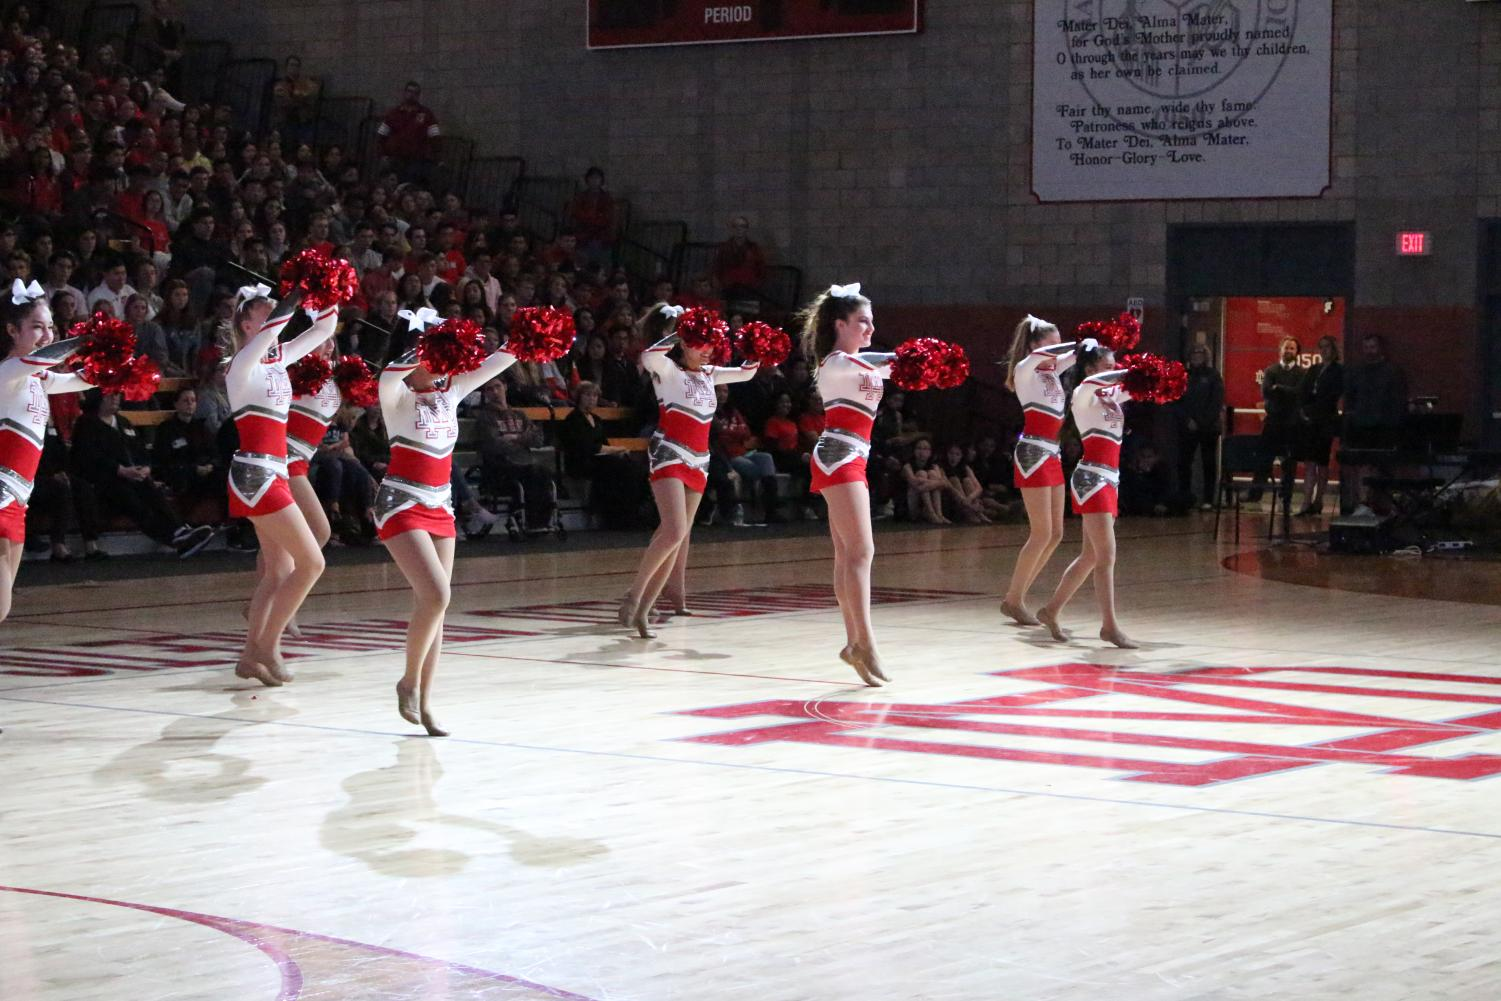 The+cheer+team+performs+at+the+Performing+Arts+Showcase+in+the+Meruelo+Athletic+Center+on+February+22%2C2018.+The+Performing+Arts+Showcase+recognizes+the+various+students+participating+in+performing+arts%2C+including+the+pep+squad%2C+the+improv+team%2C+choir%2C+All-Male+Hip-Hop%2C+the+dance+team%2C+instrumental+performance+groups+and+theatre.